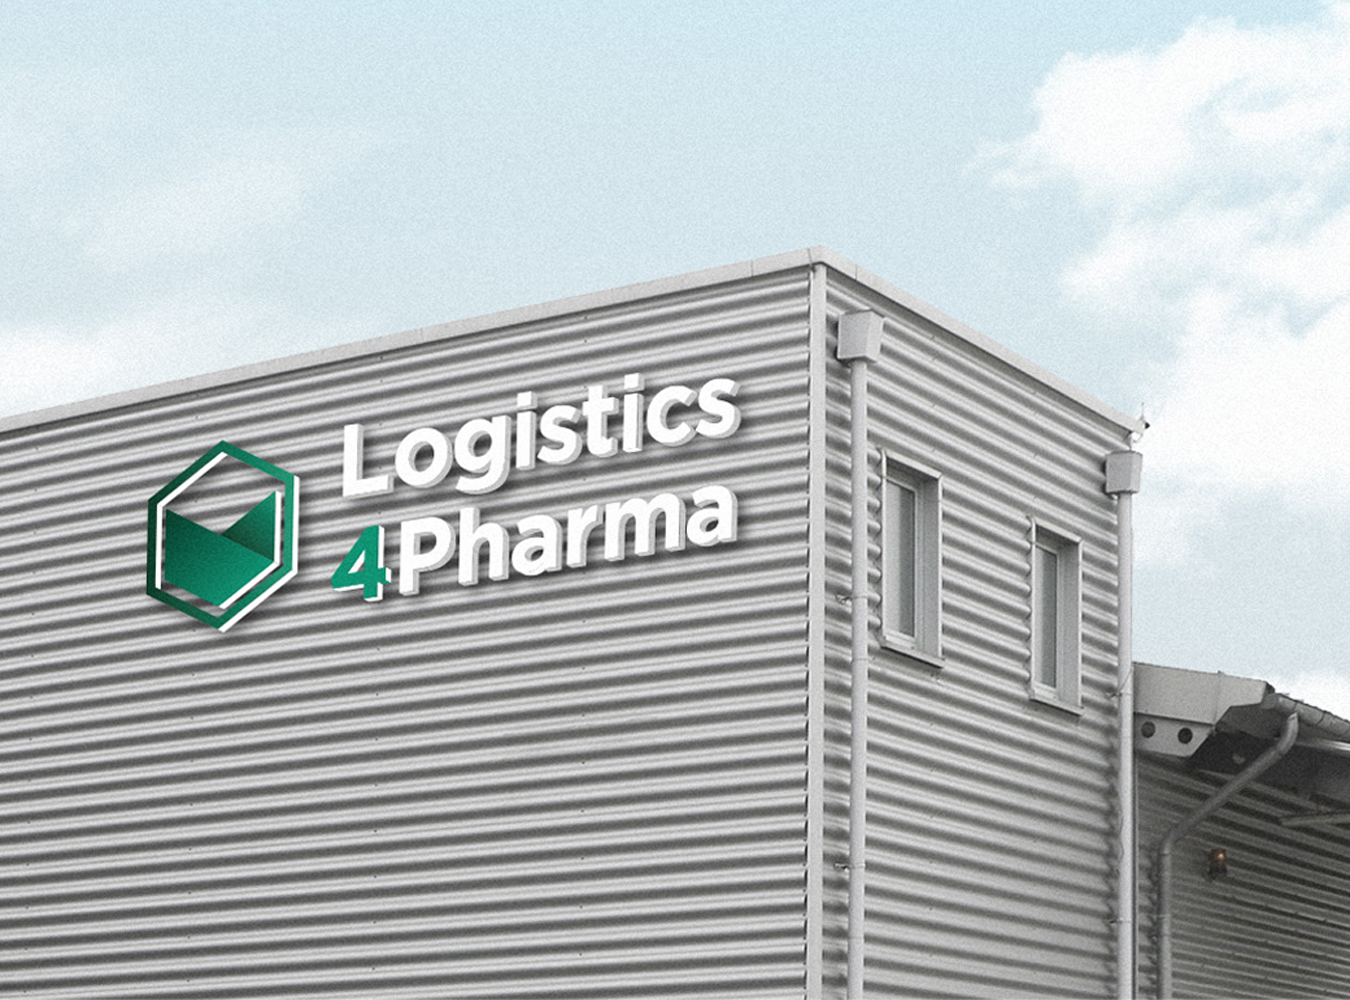 Logistics 4 Pharma - Home - Company - Preview; Logistics 4 Pharma building